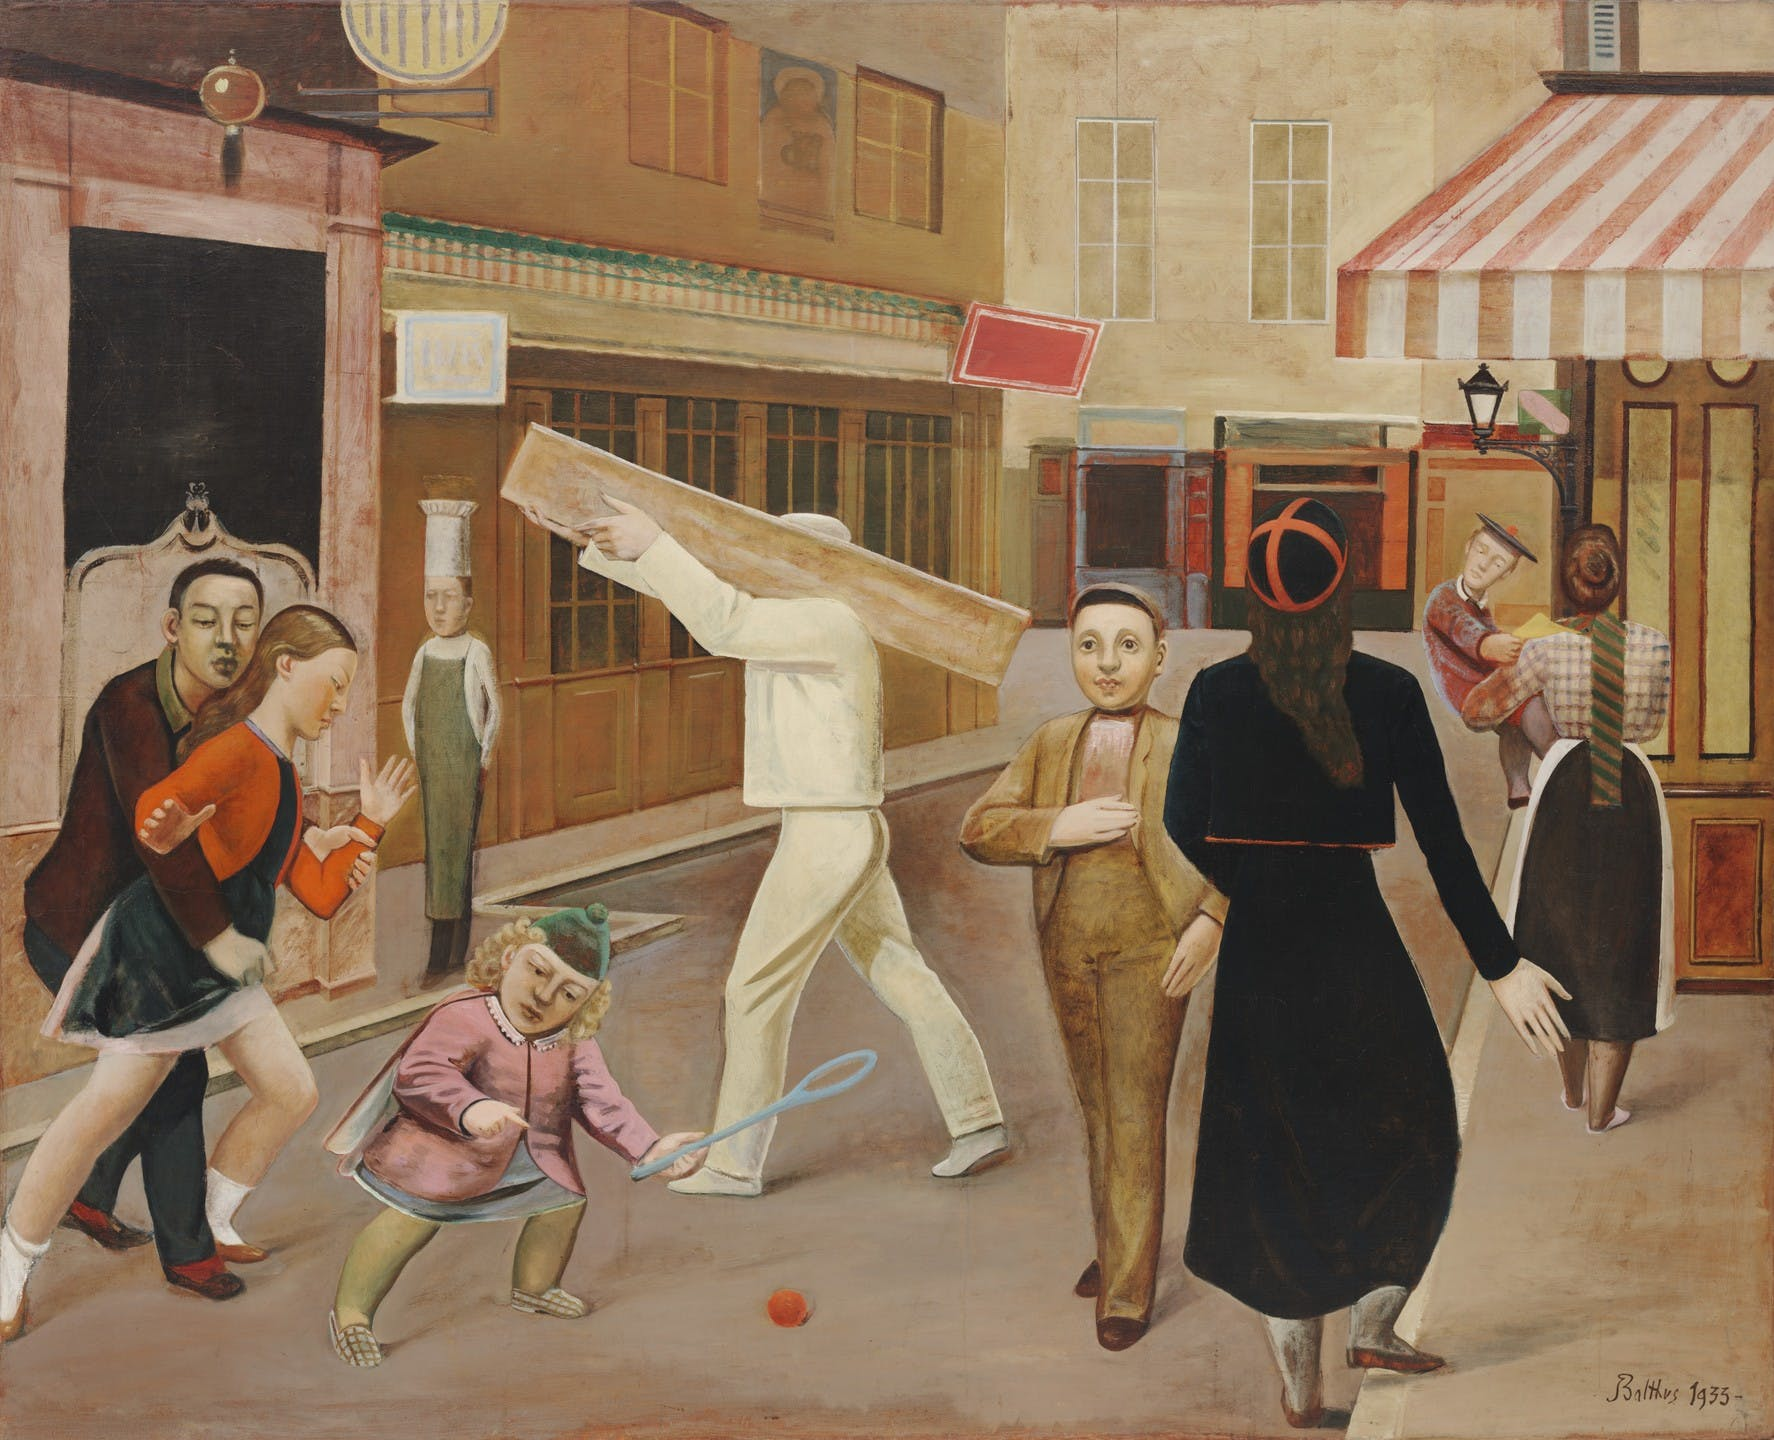 Balthus: Constructing a Magical Reality